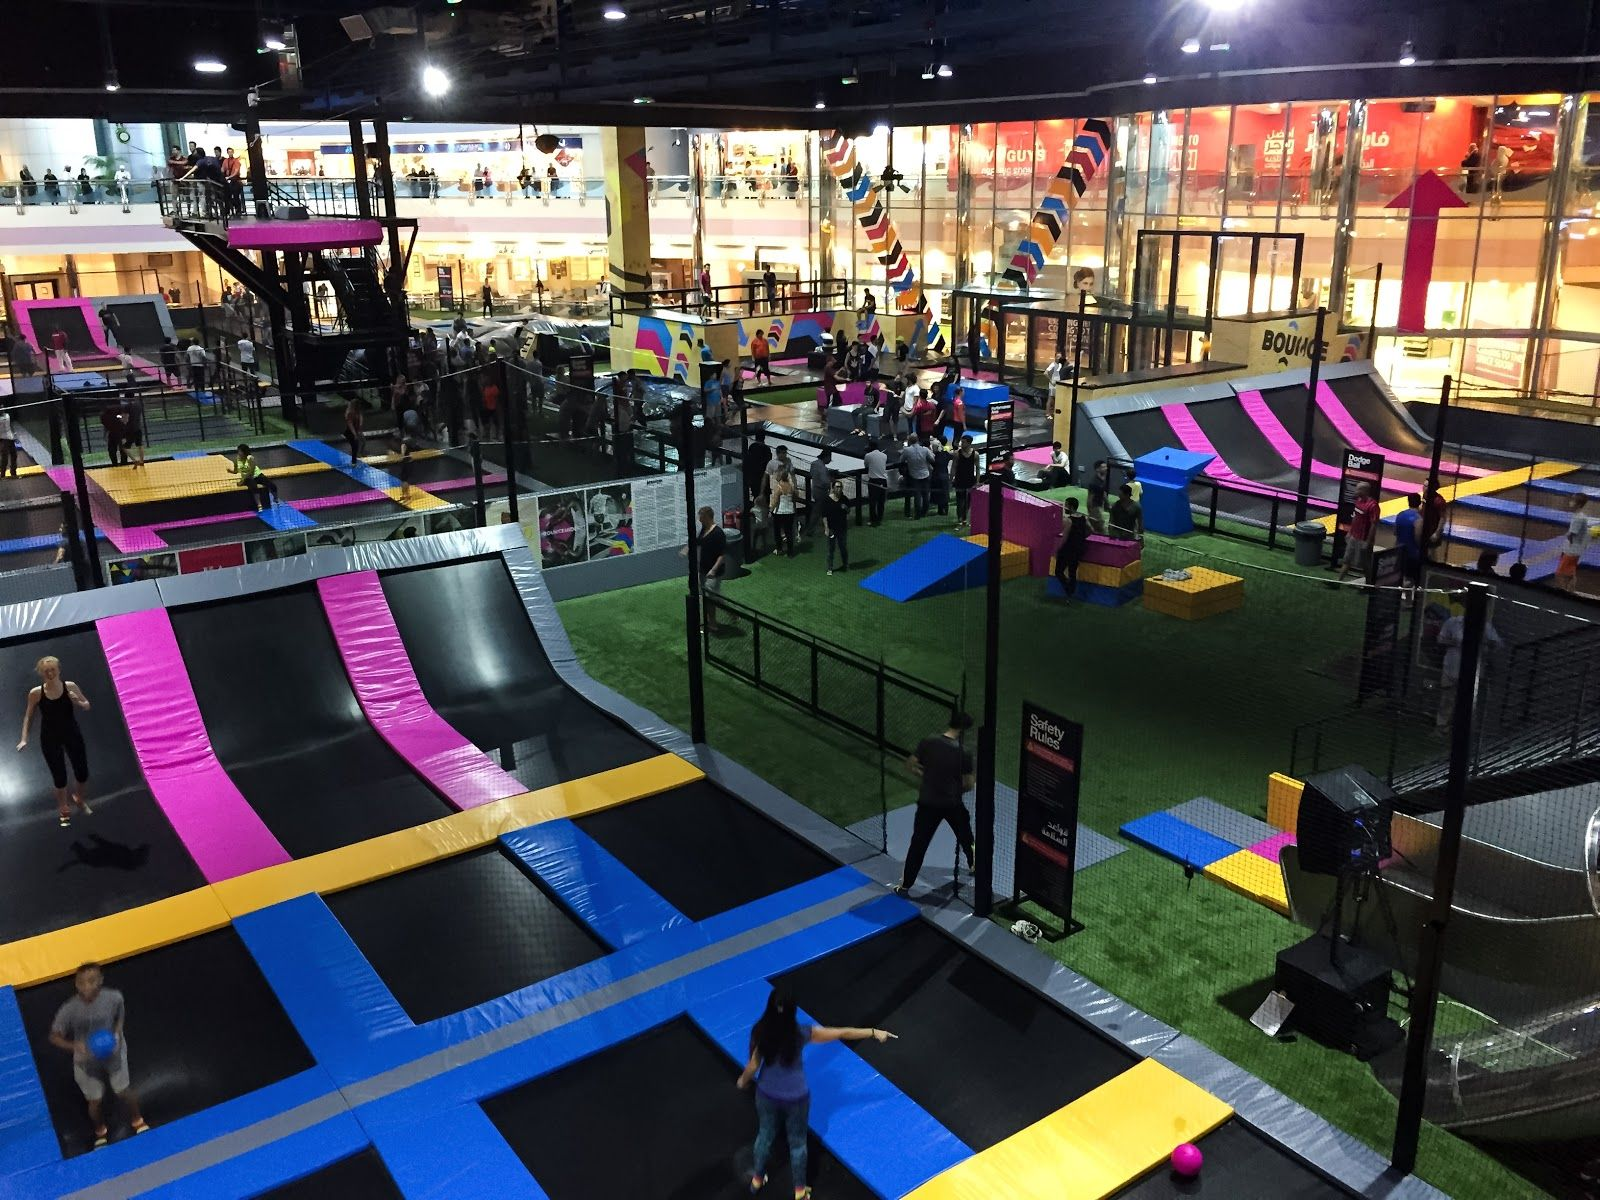 Trampoline room in house - Bounce Abu Dhabi Trampoline Park